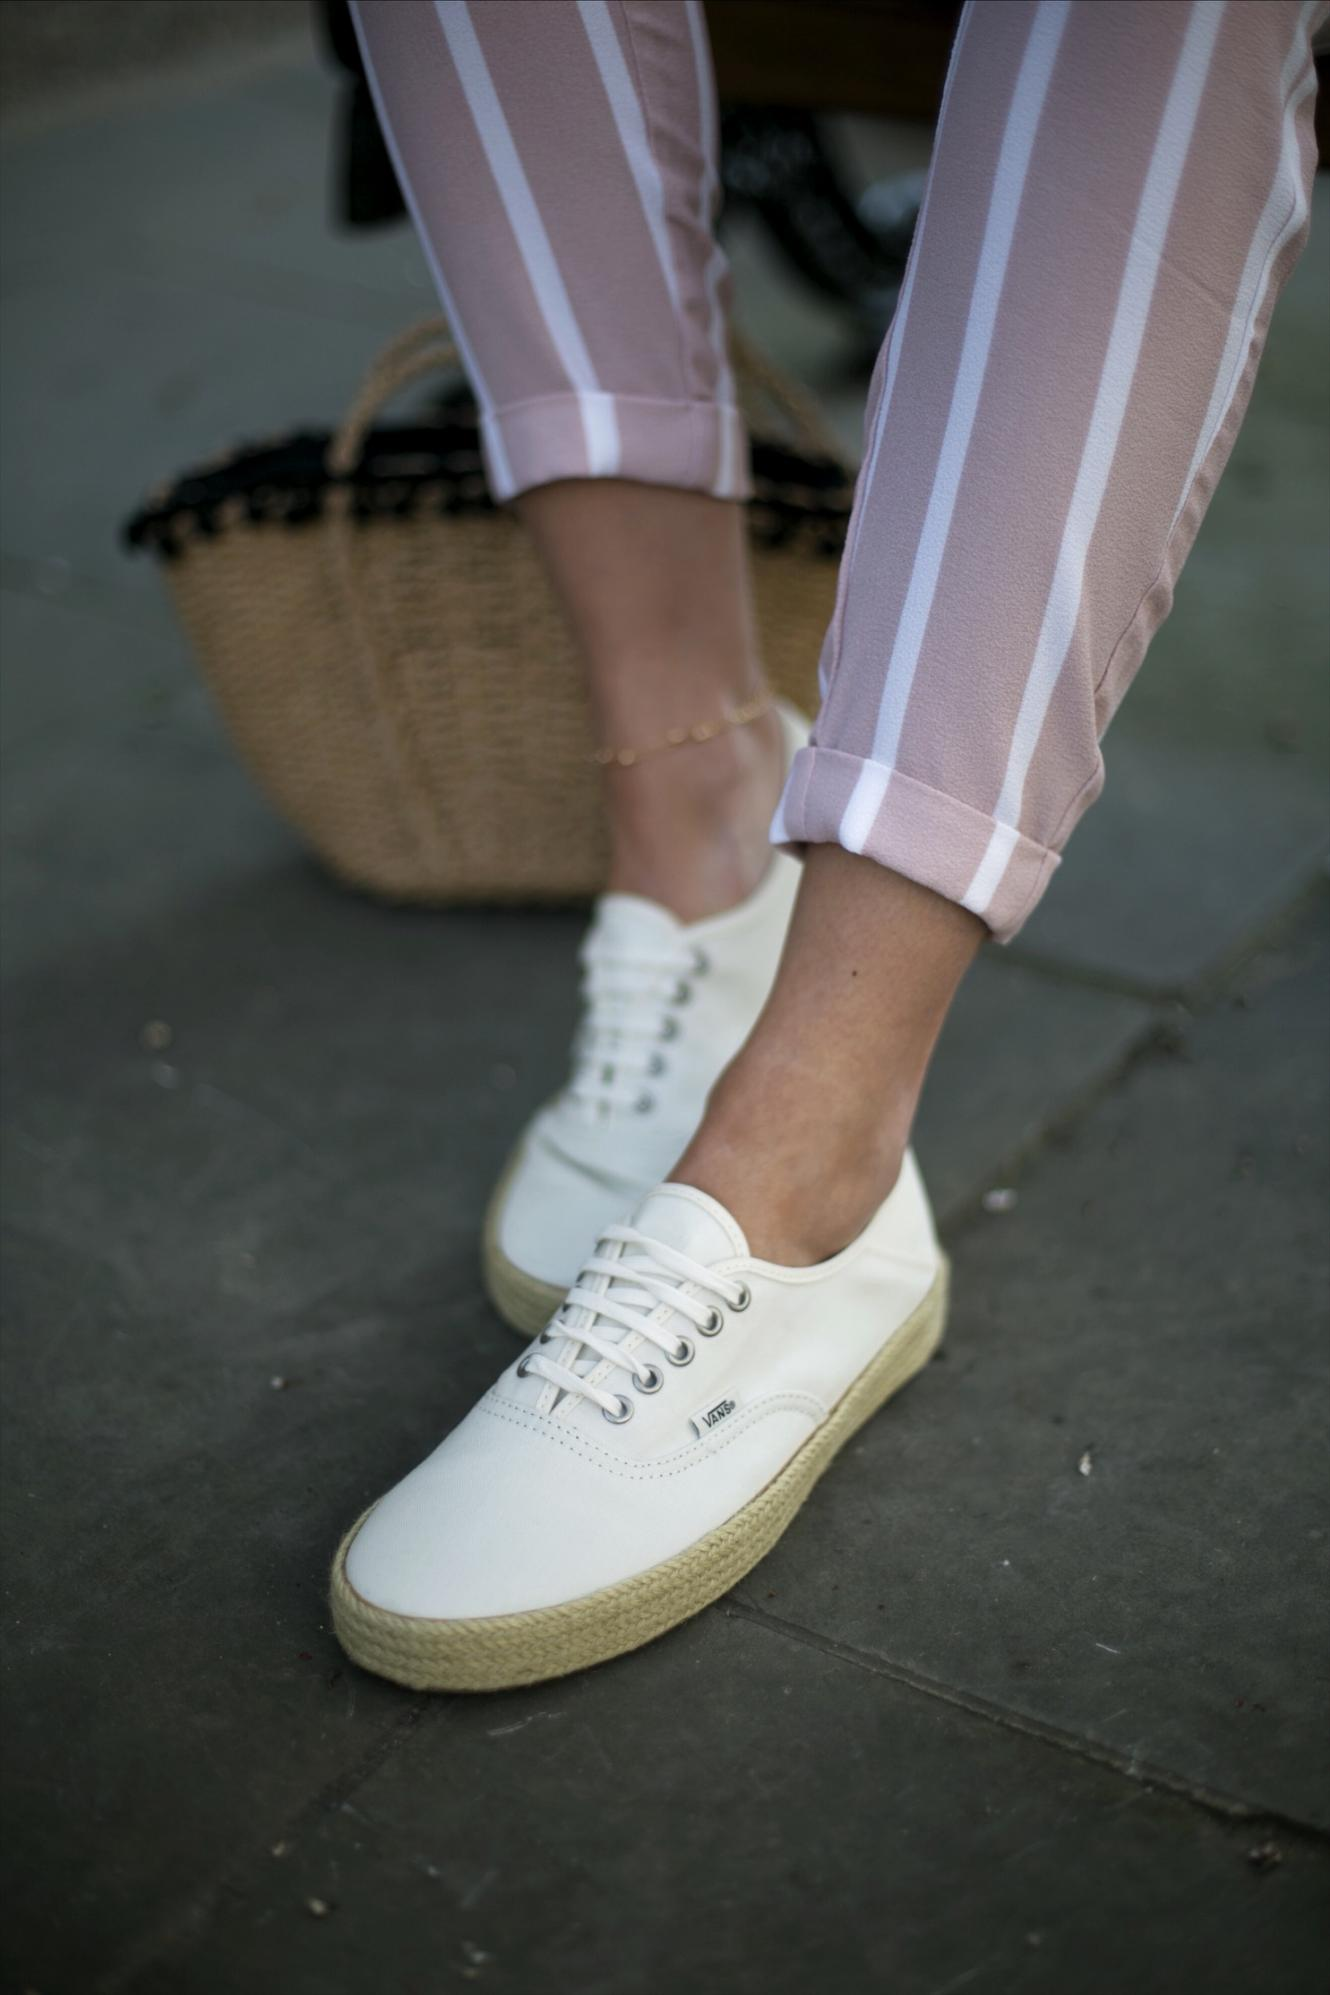 Vans espadrilles canvas lace up flat summer shoes, basket bag, pink stripe casual trousers